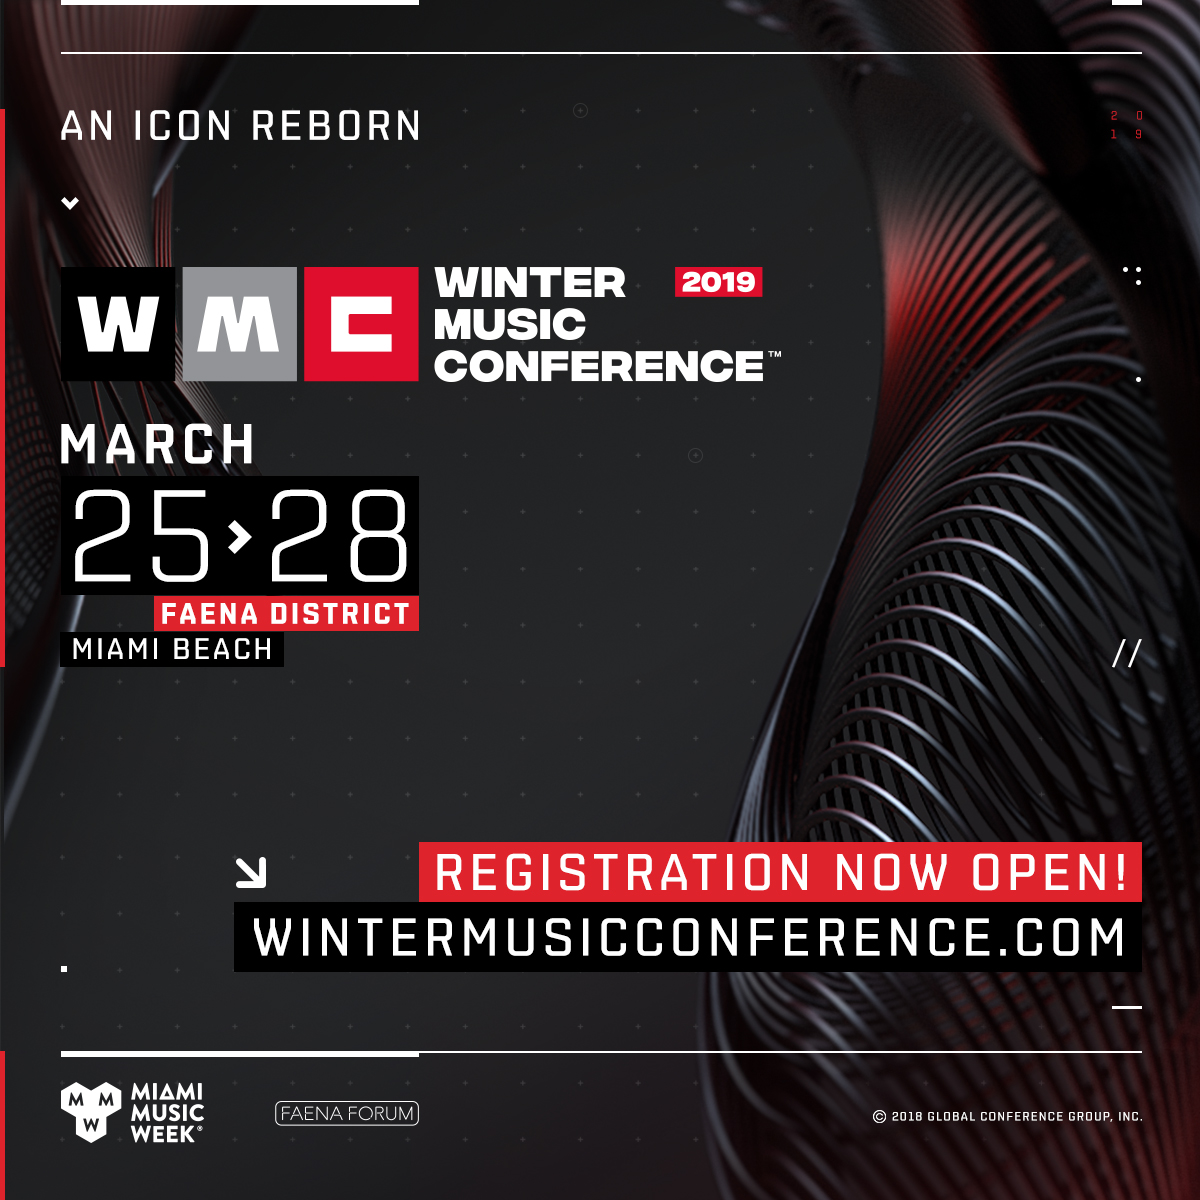 Winter Music Conference March 26th Image